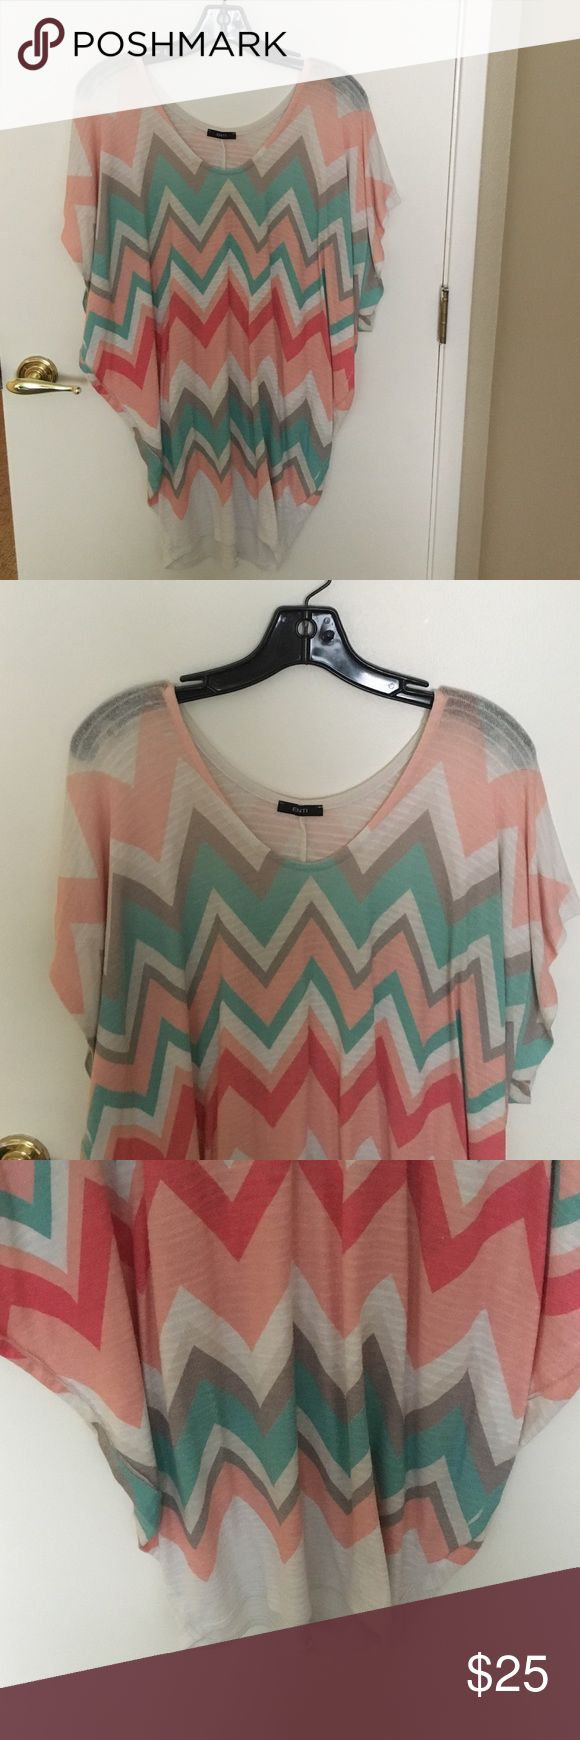 Tunic style chevron shirt Roomy, comfy chevron print shirt. This shirt is HUGE and such a comfy fit with jeans! Tops Tunics